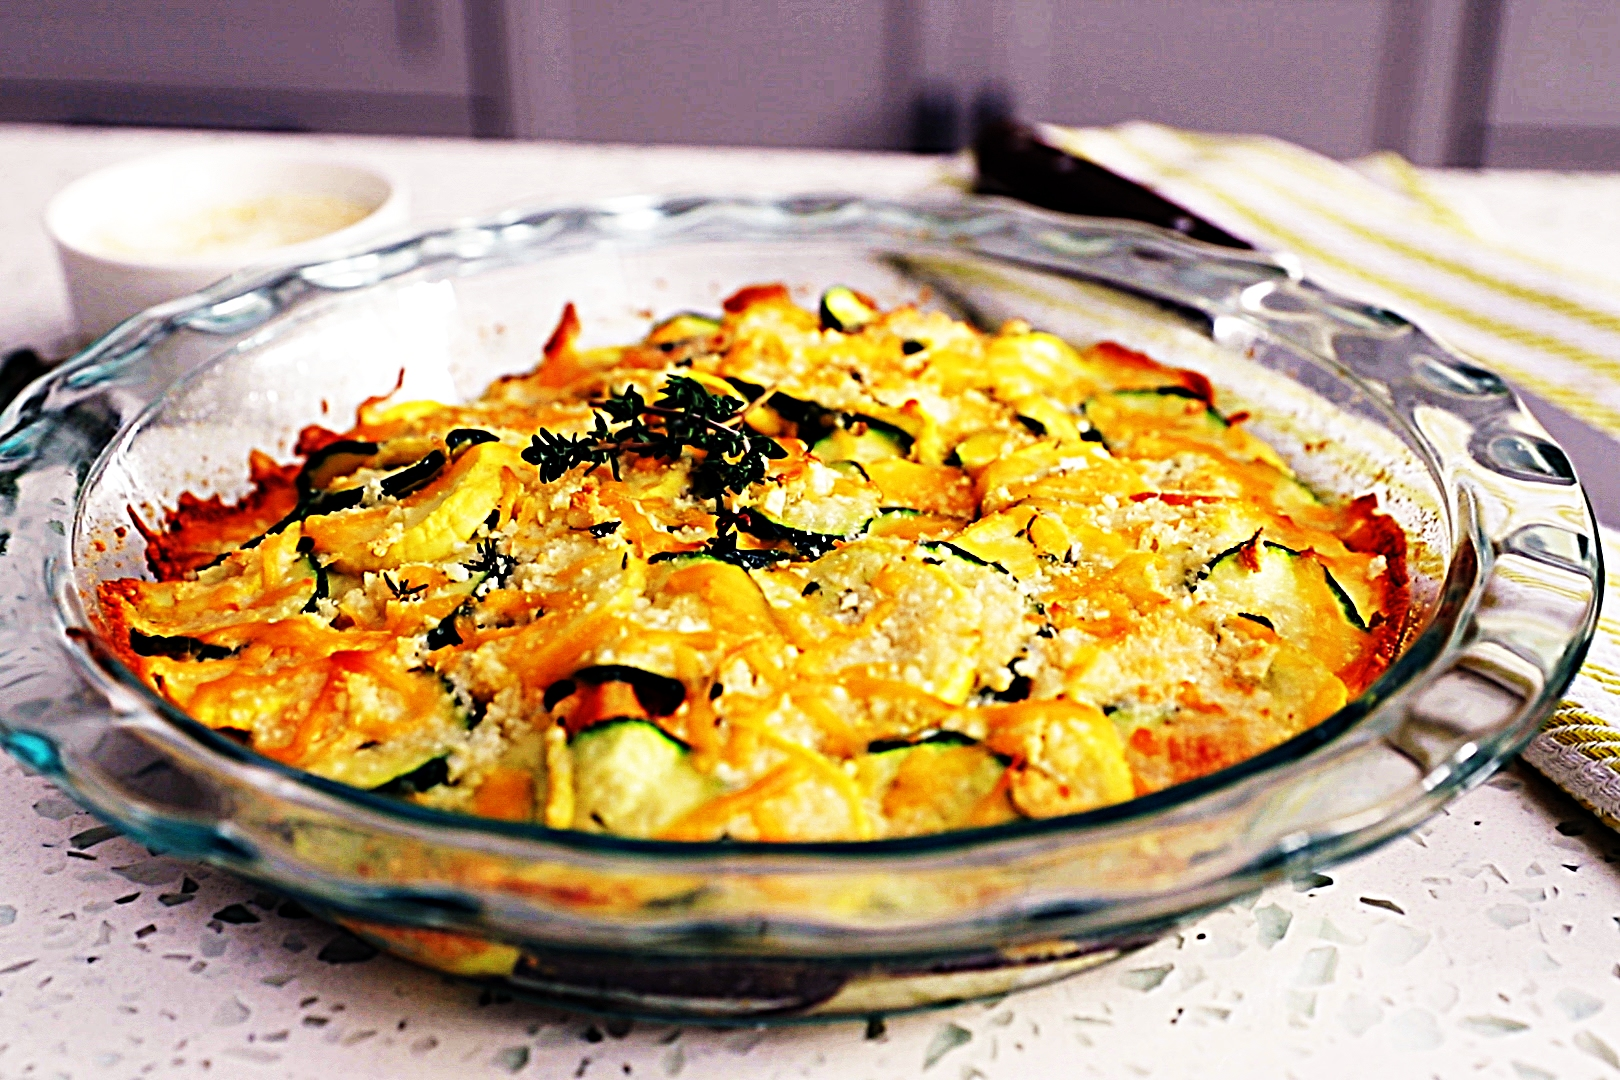 Stupid-Easy Recipe for Farmer's Market Vegetable Bake with Sharp Cheddar and Parmesan (#1 Top-Rated)